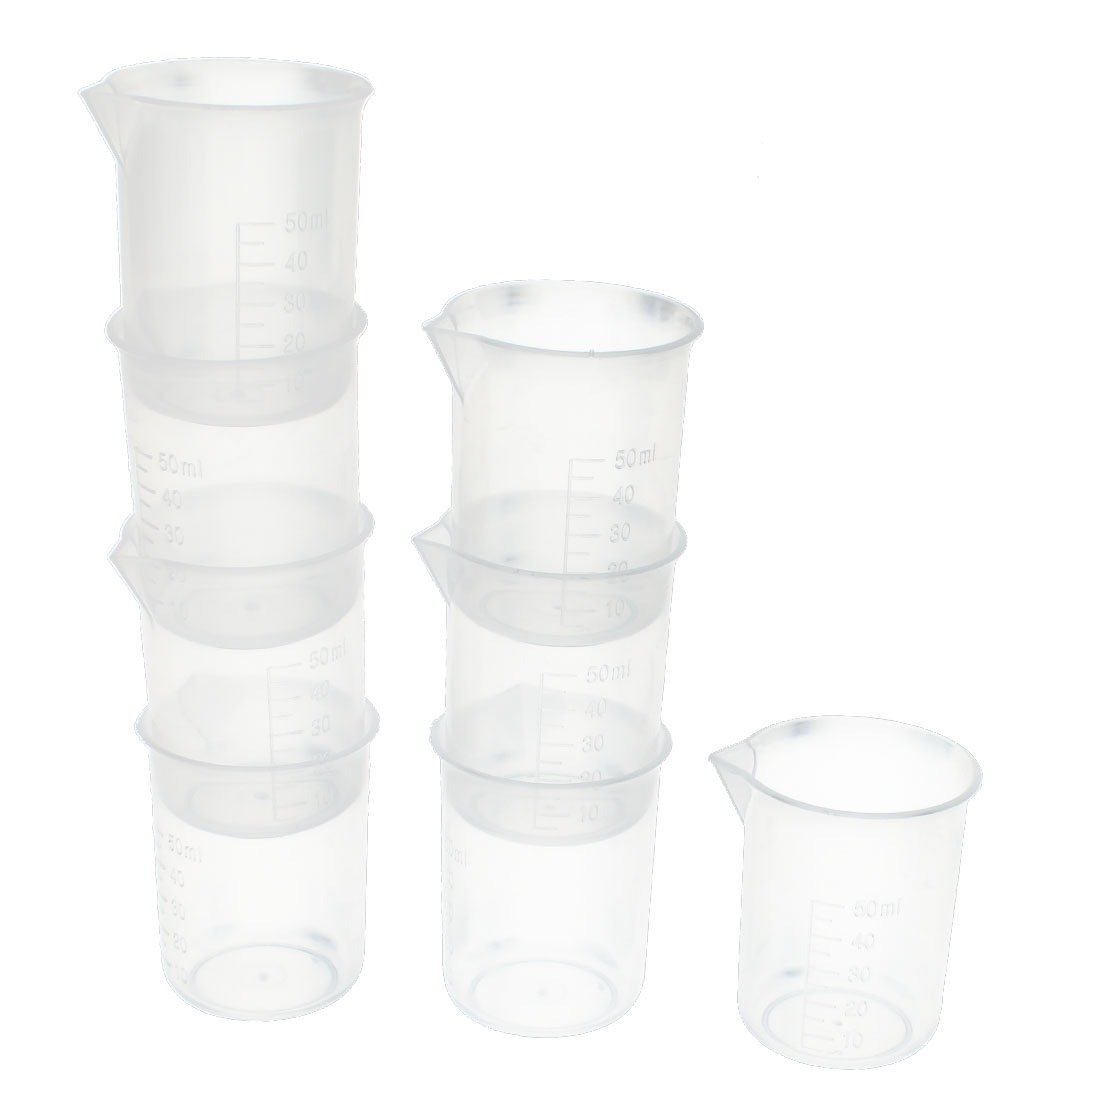 Clear Plastic Graduated 50ml Capacity Measuring Cups Container Holder 8pcs